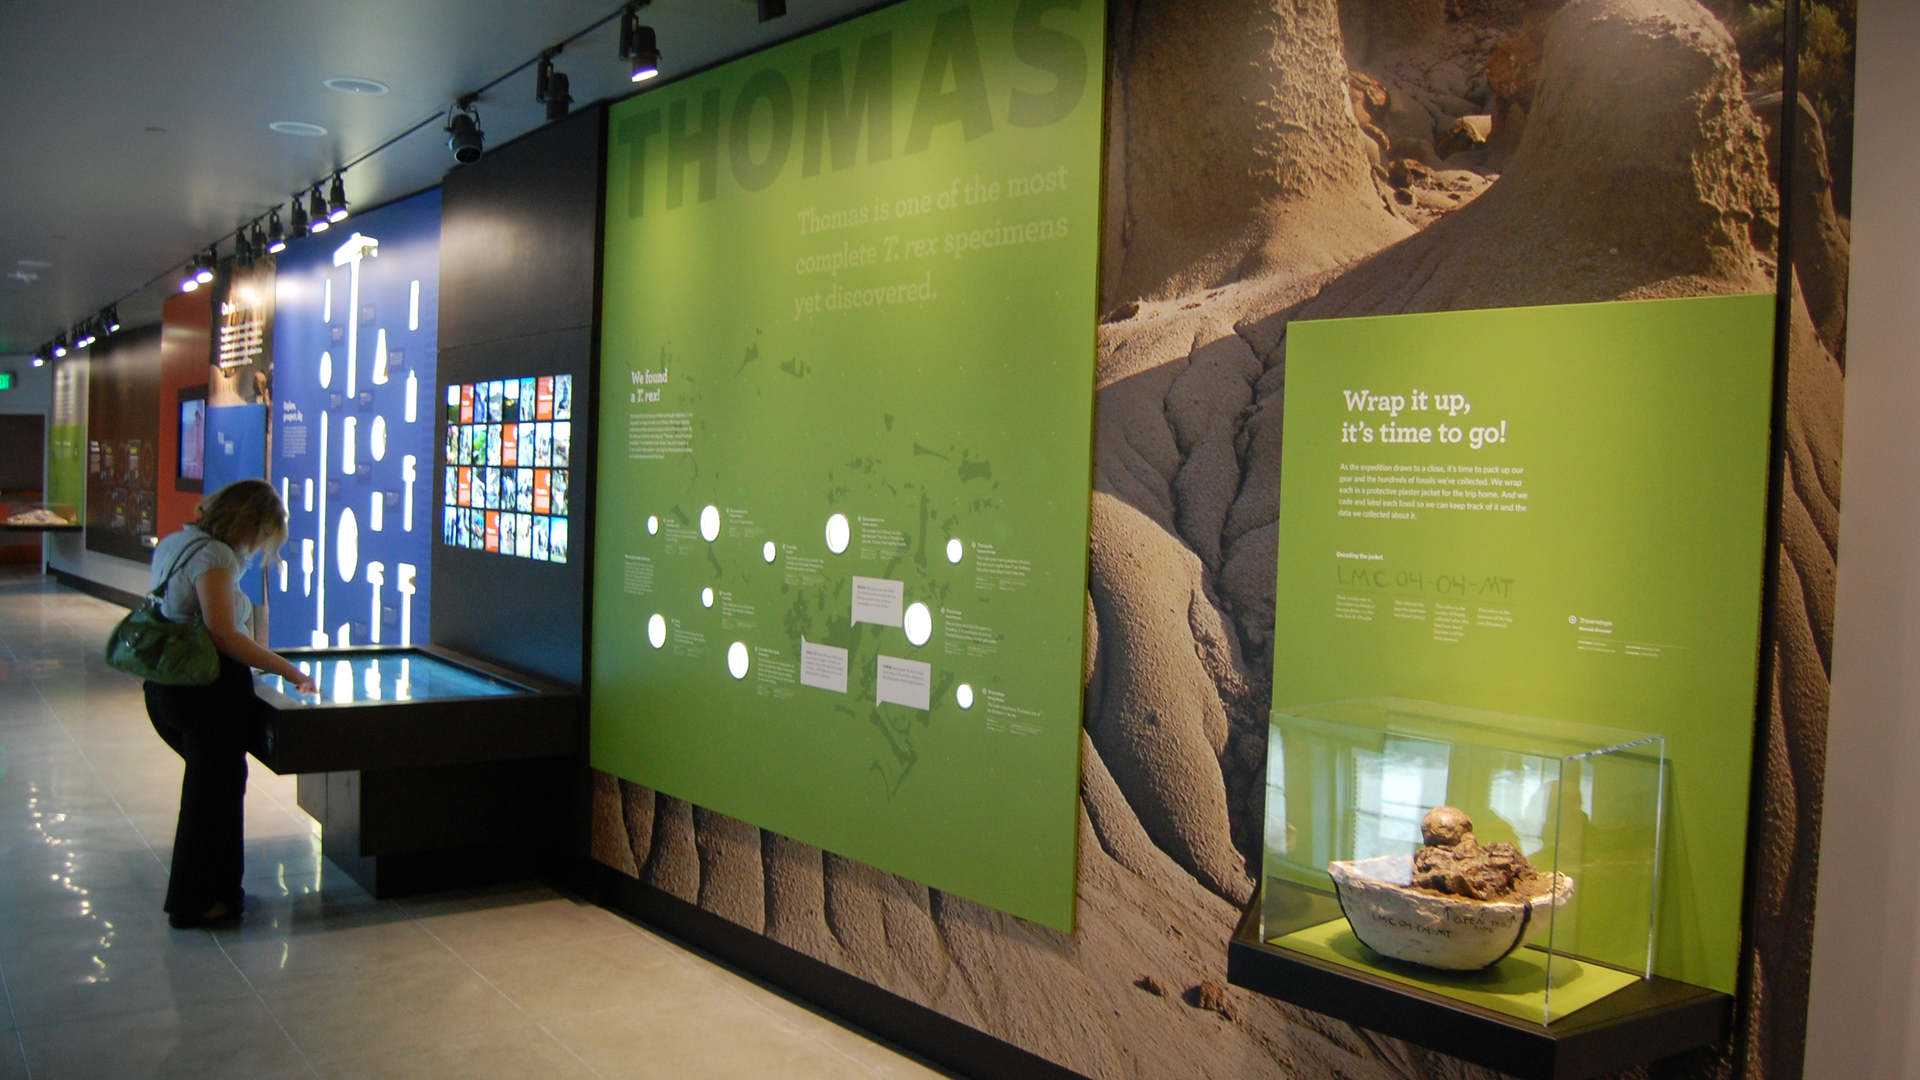 los angeles county museum of natural history featuring the dinosaur hall exhibit graphic wall and interactives